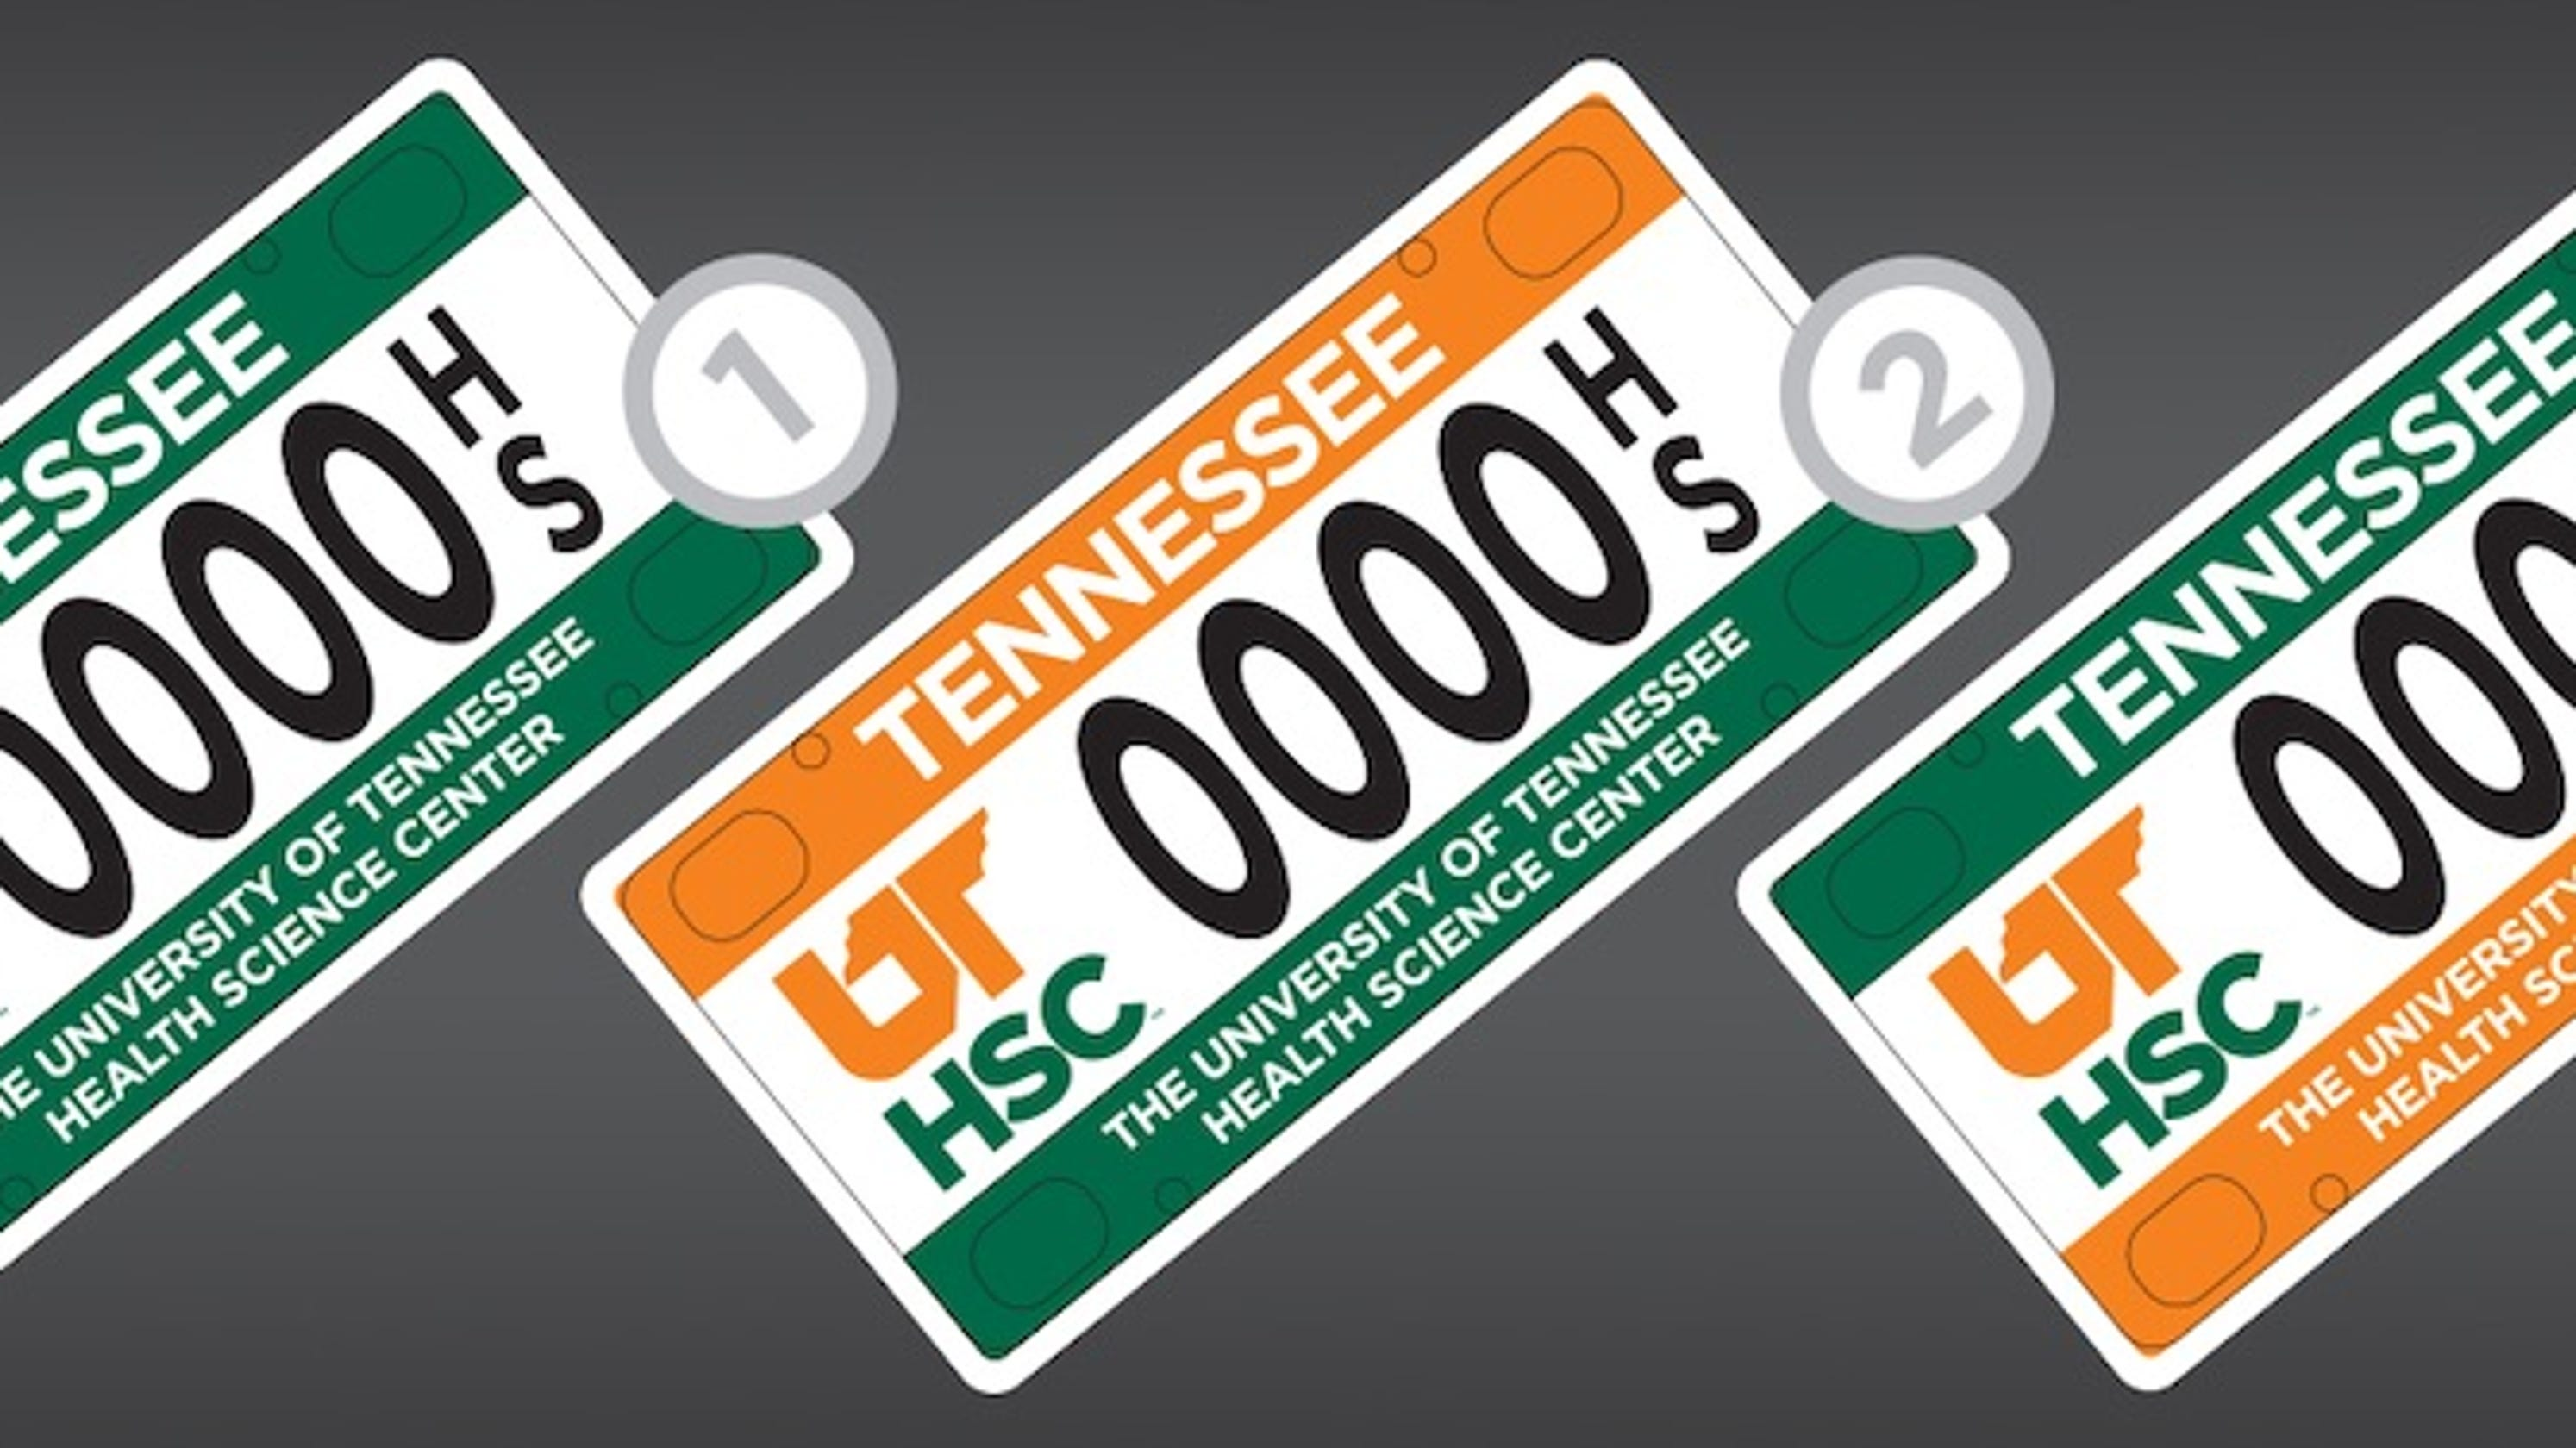 Want a UTHSC license plate? Campaign needs preorders to succeed